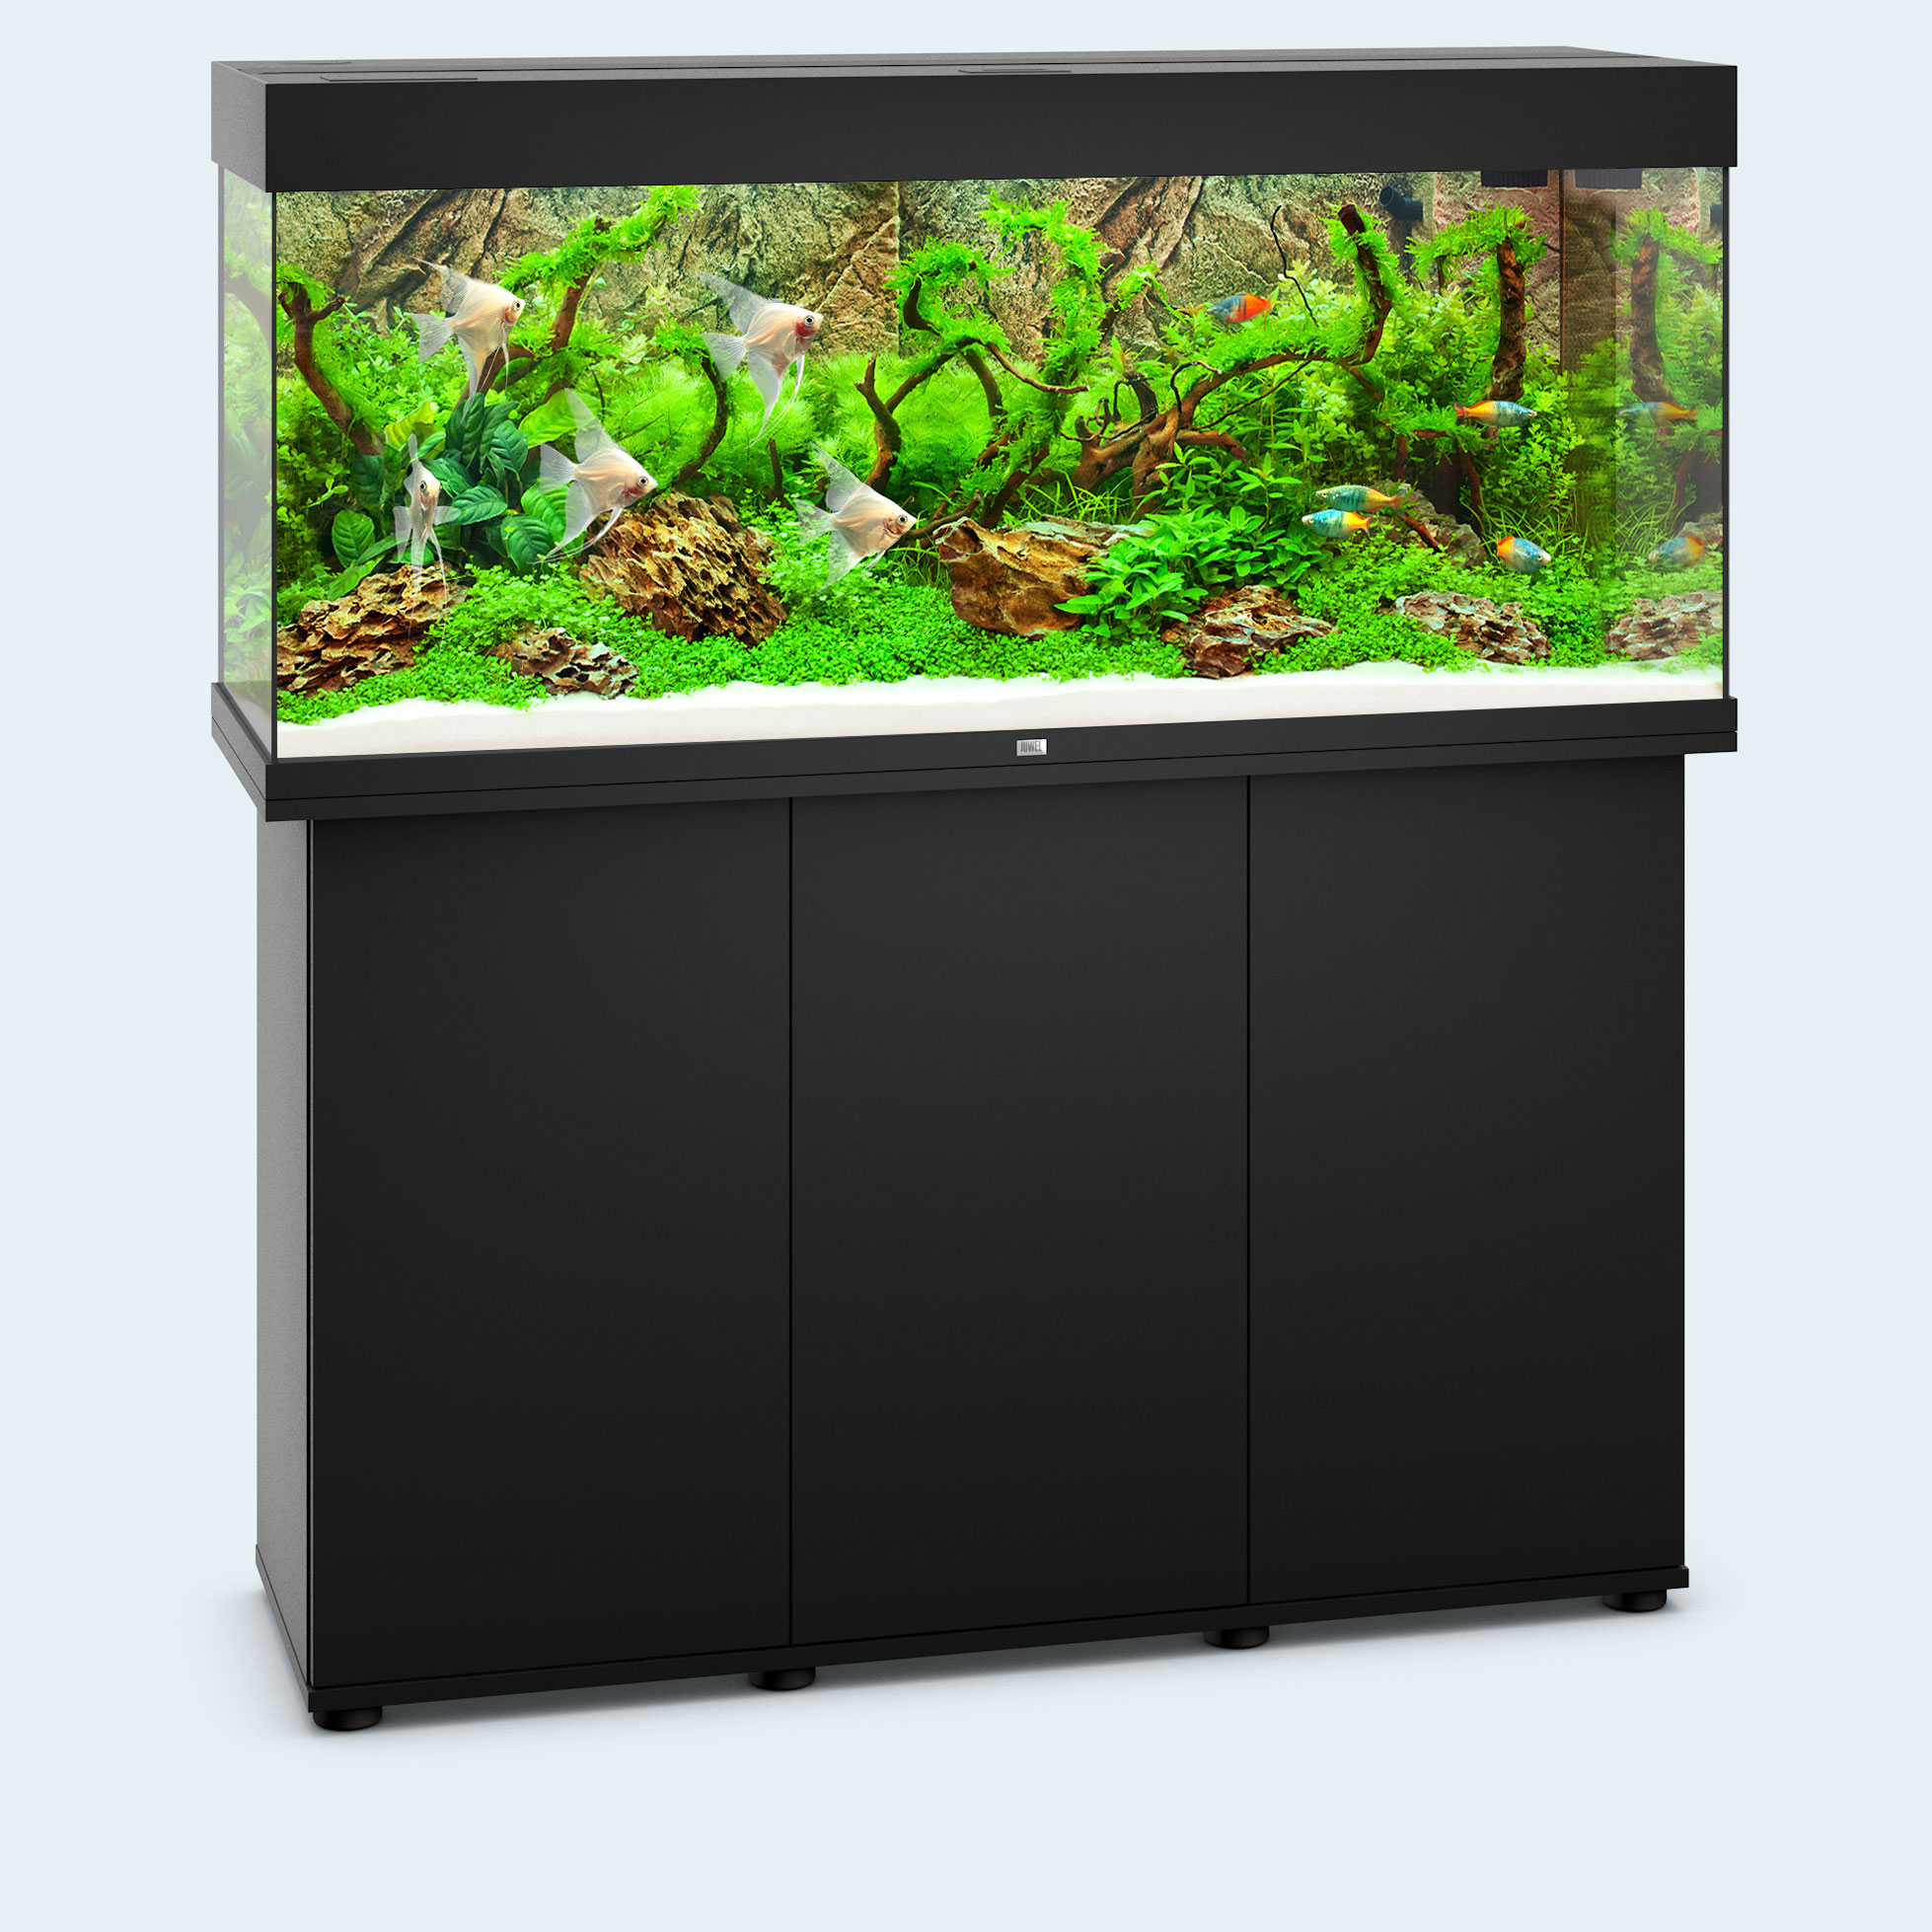 Juwel ag rio 240 purchase online for Aquarium juwel